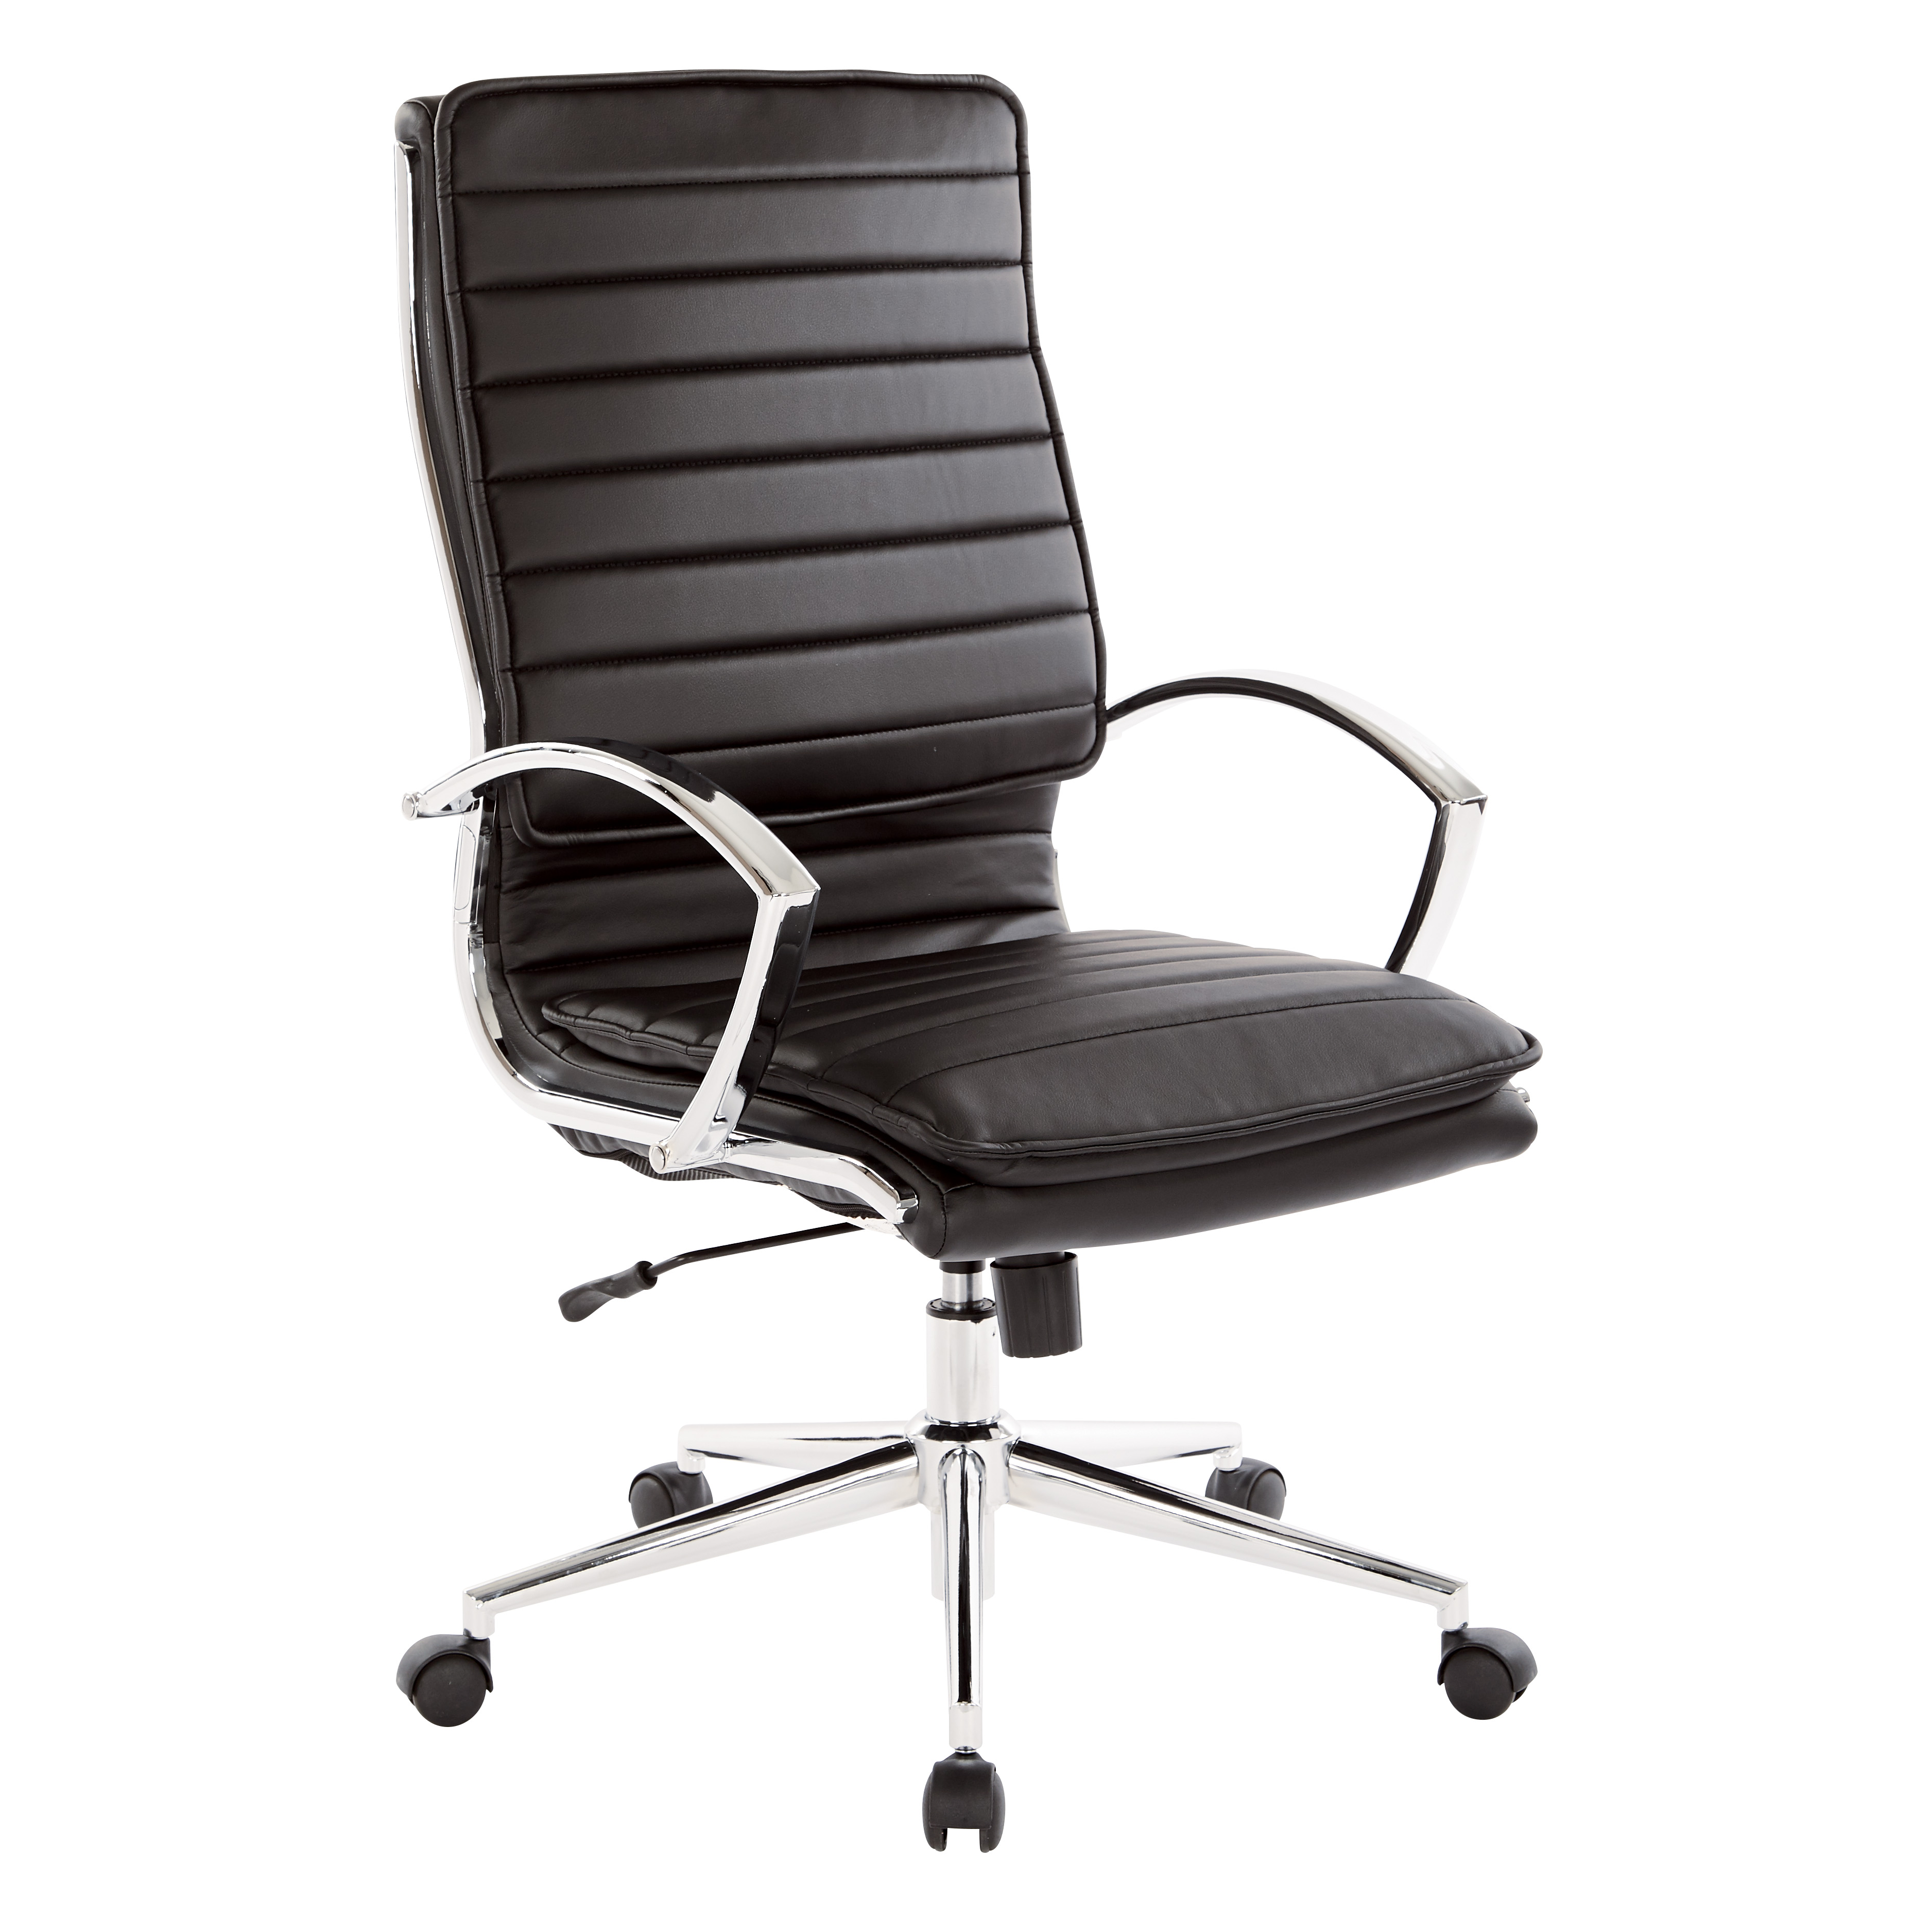 High Back Manager's Faux Leather Swivel Office Chair in Black with Chrome Base